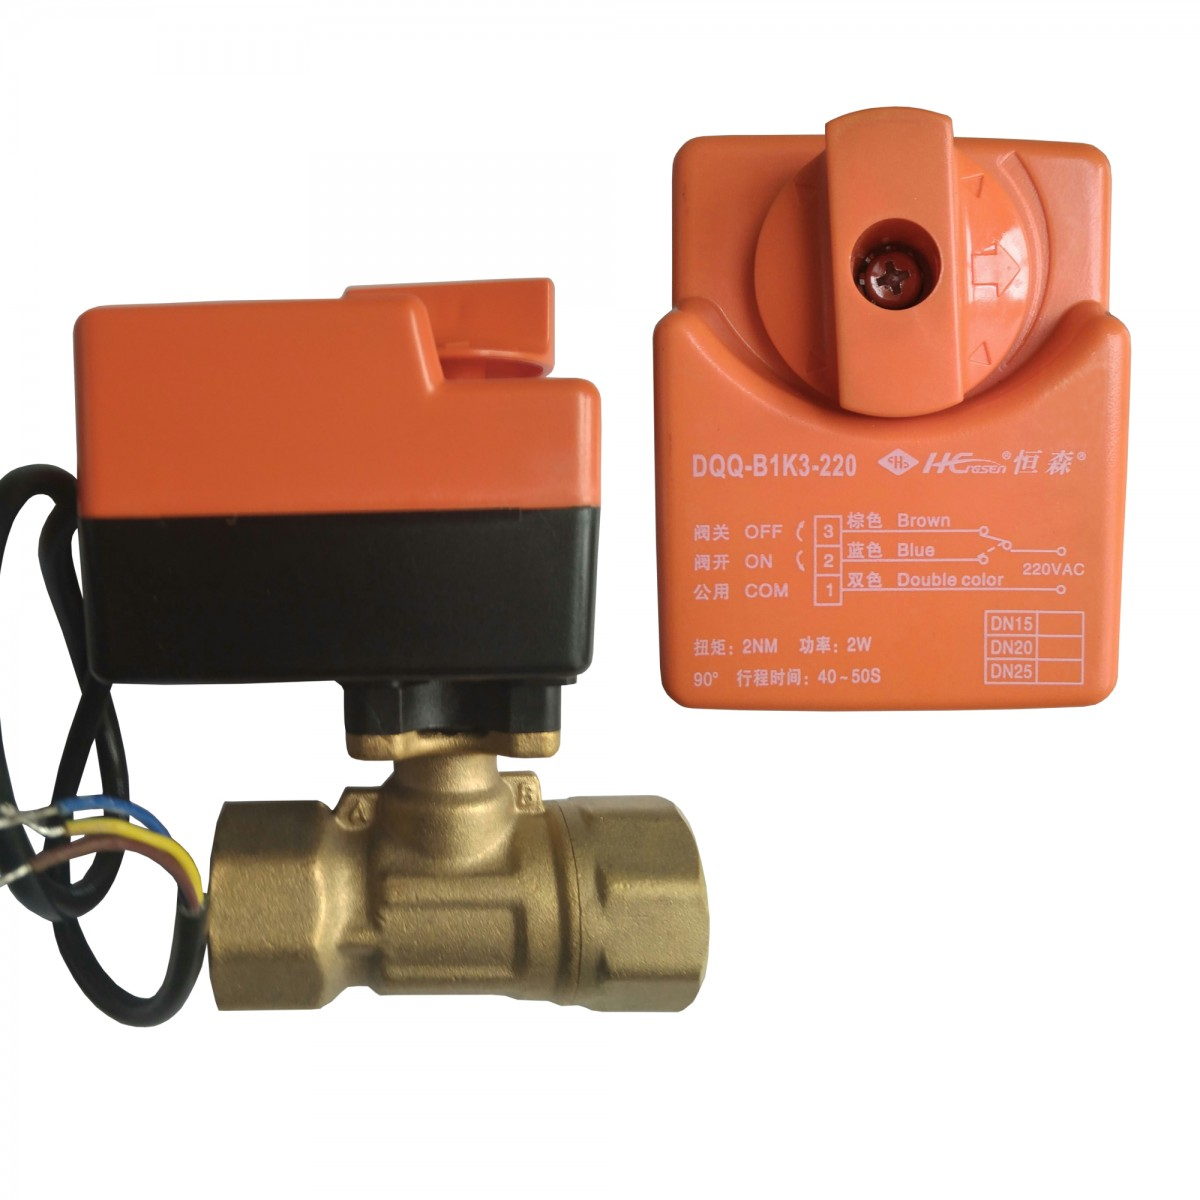 "IMG 20180324 085803 - Motorised Ball Valve - 2-Way - Power Open and Close -Motor actuated valve - 220V Non-spring return <p data-spm-anchor-id=""a2700.details.pronpeci14.i1.6d7e3872muzOkh""><strong>Technical data</strong></p> Power: 220VAC±10%, 2.0W                     Stroke: 2.0N.mNominal Pressure: 1.6Mpa                                   Running Time: 40-50S <p data-spm-anchor-id=""a2700.details.pronpeci14.i0.6d7e3872muzOkh"">Temperature of Medium: 5-95℃                          Medium: Chilled/hot water or glycol</p> - sdhw-con - IMG 20180324 085803"